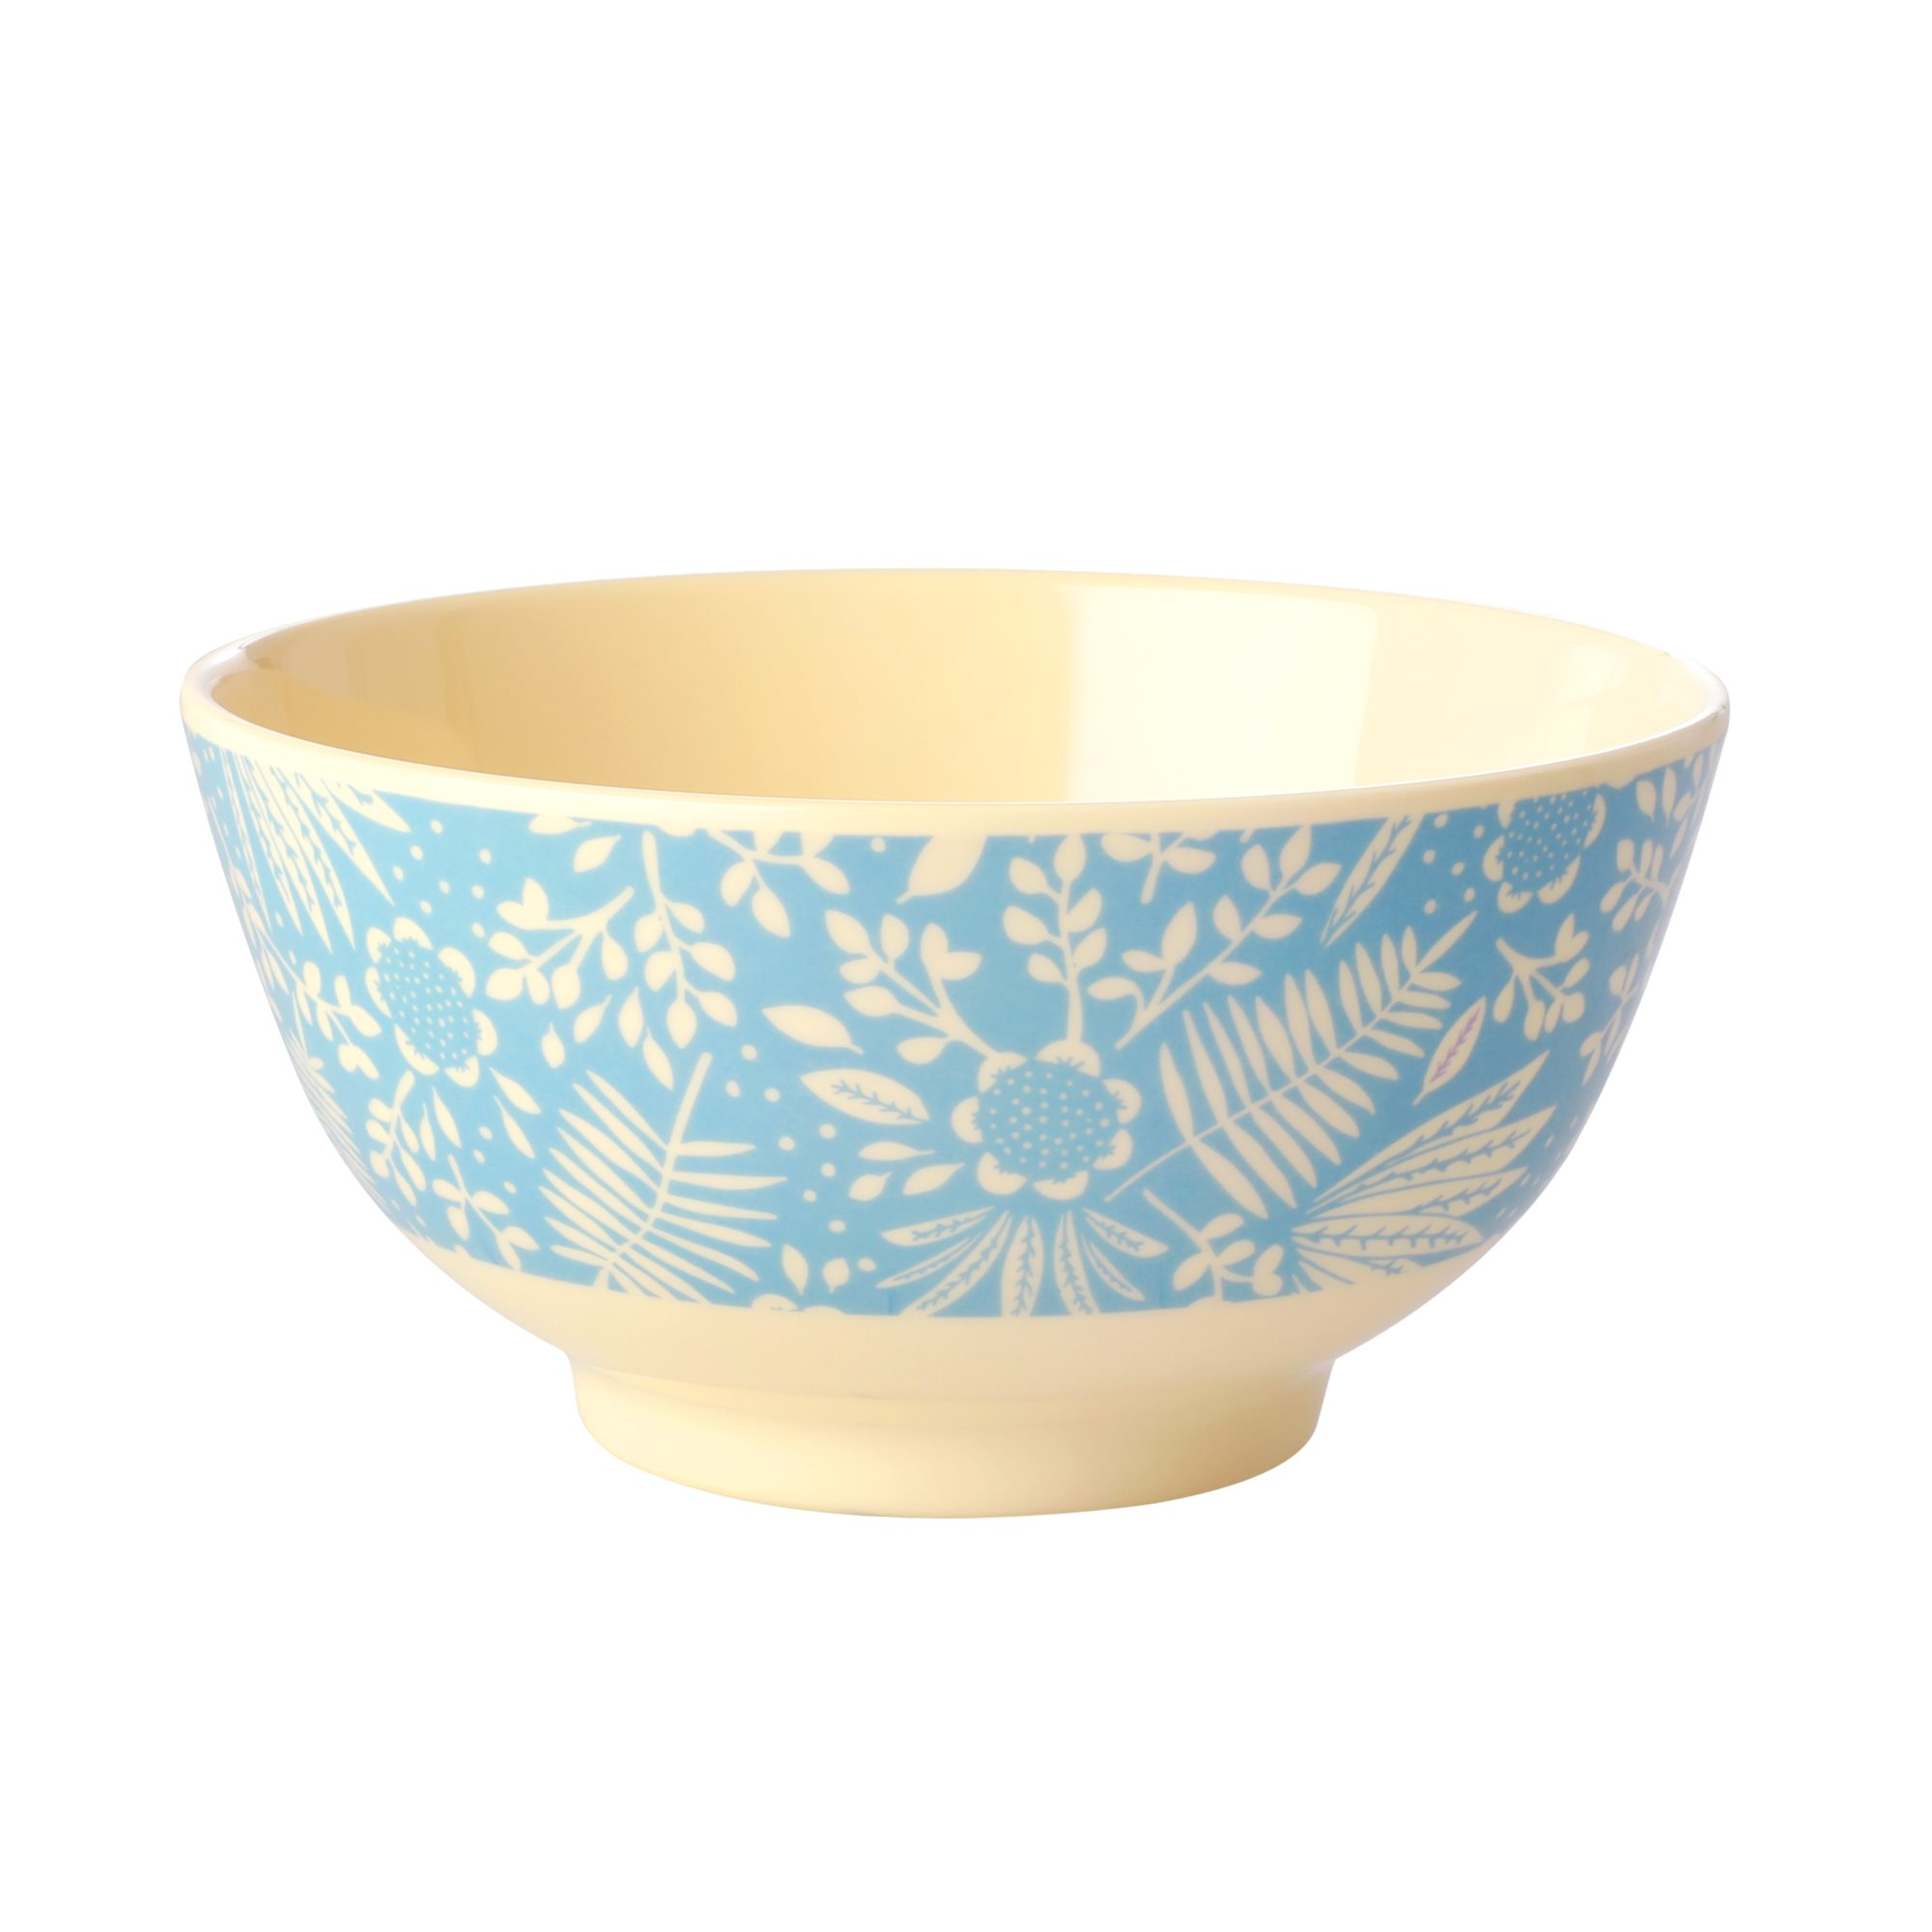 Medium Melamine Bowl - Blue Fern and Flower Print - rice